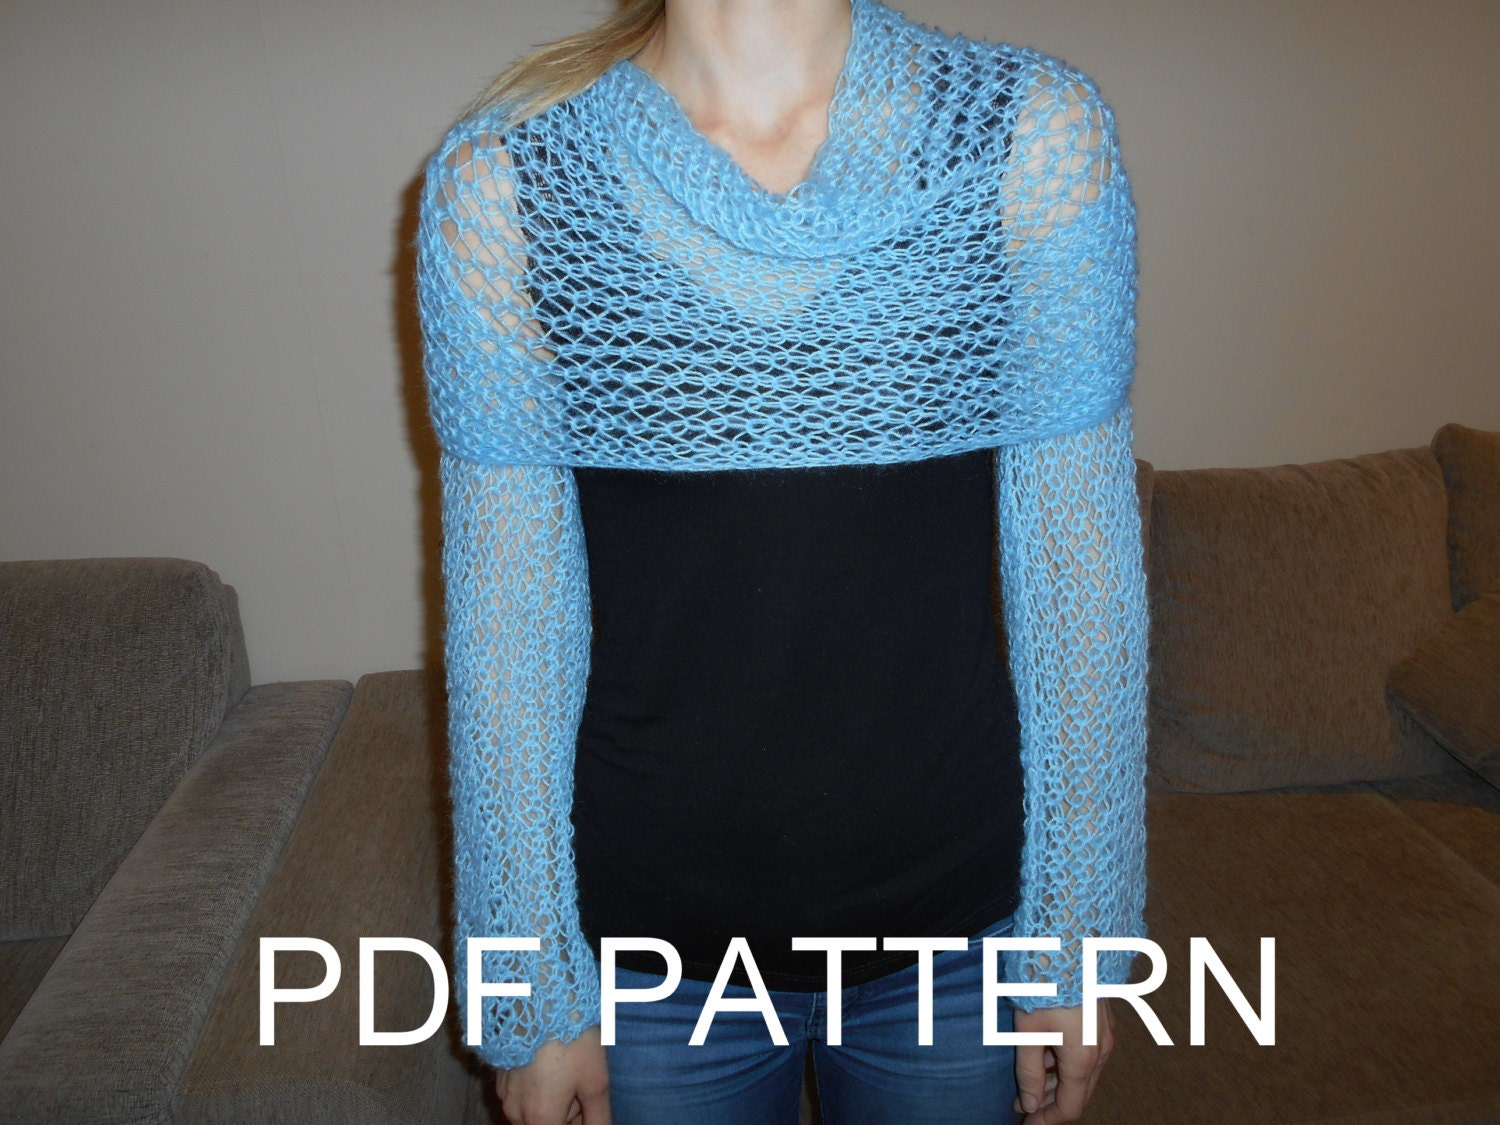 Knitting Pattern For Scarf With Sleeves : PDF KNITTING PATTERN for long sleeves lace scarf sweater